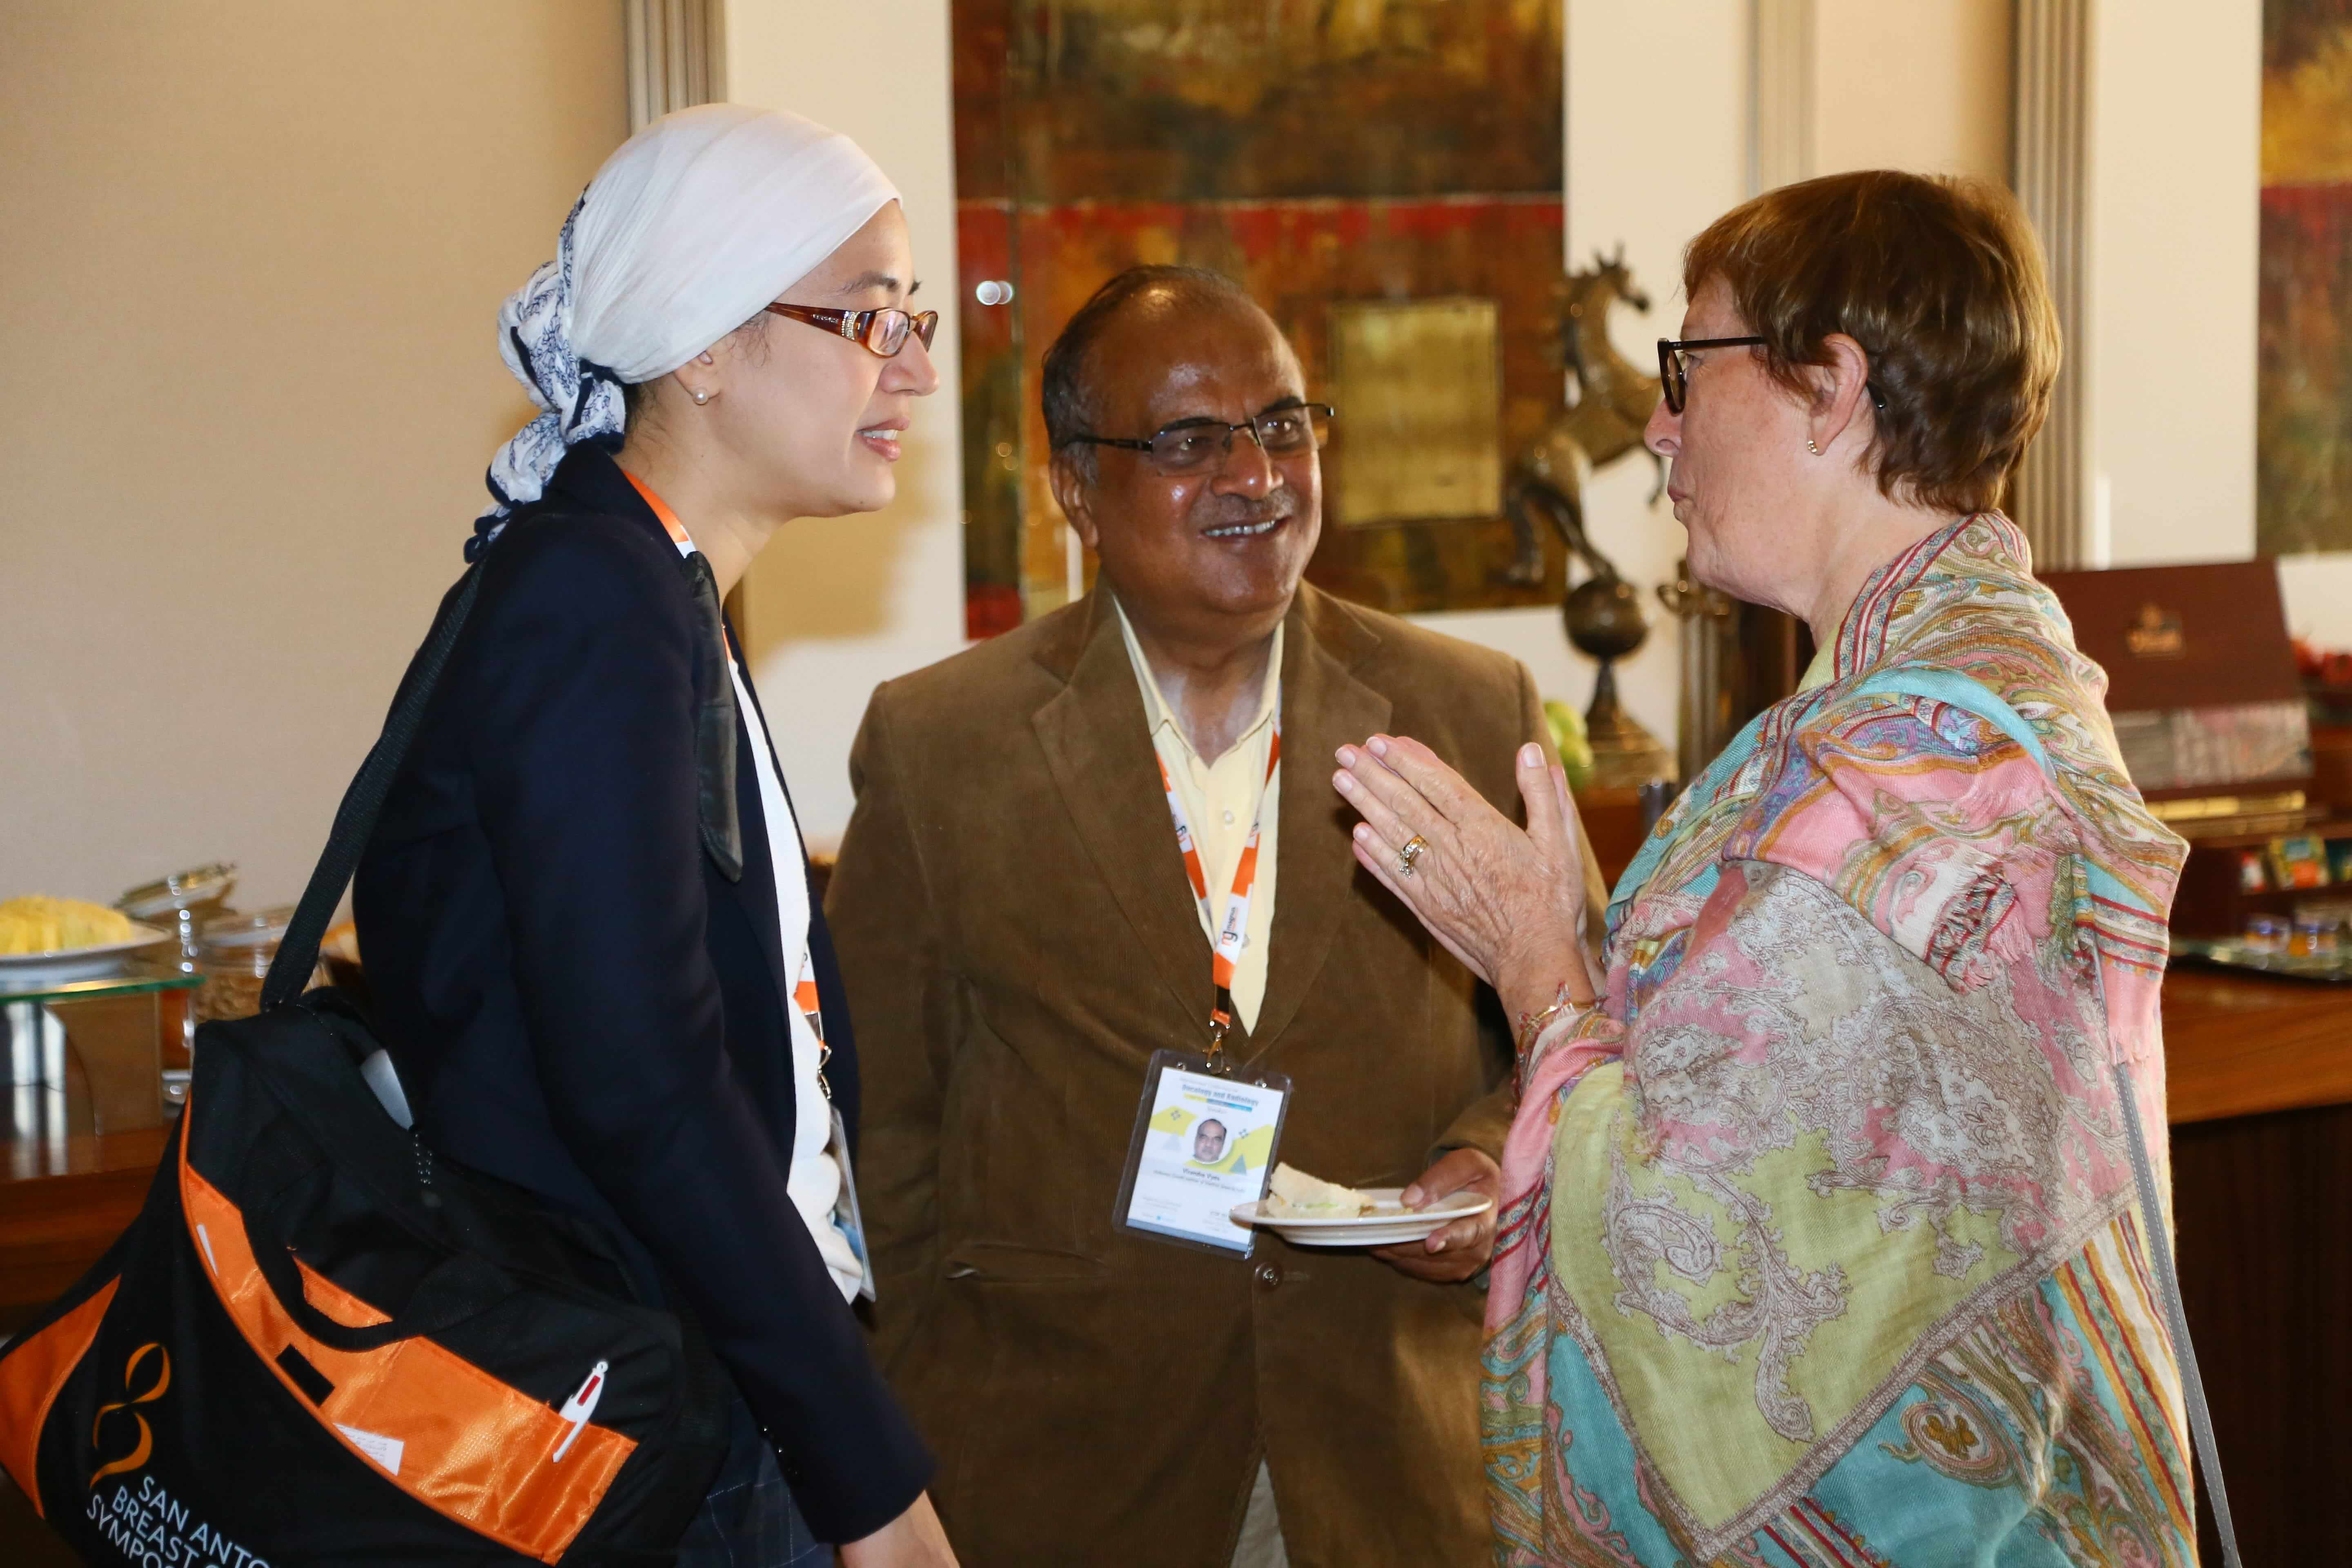 Cancer Conferences - ICOR 2016 Speakers during break